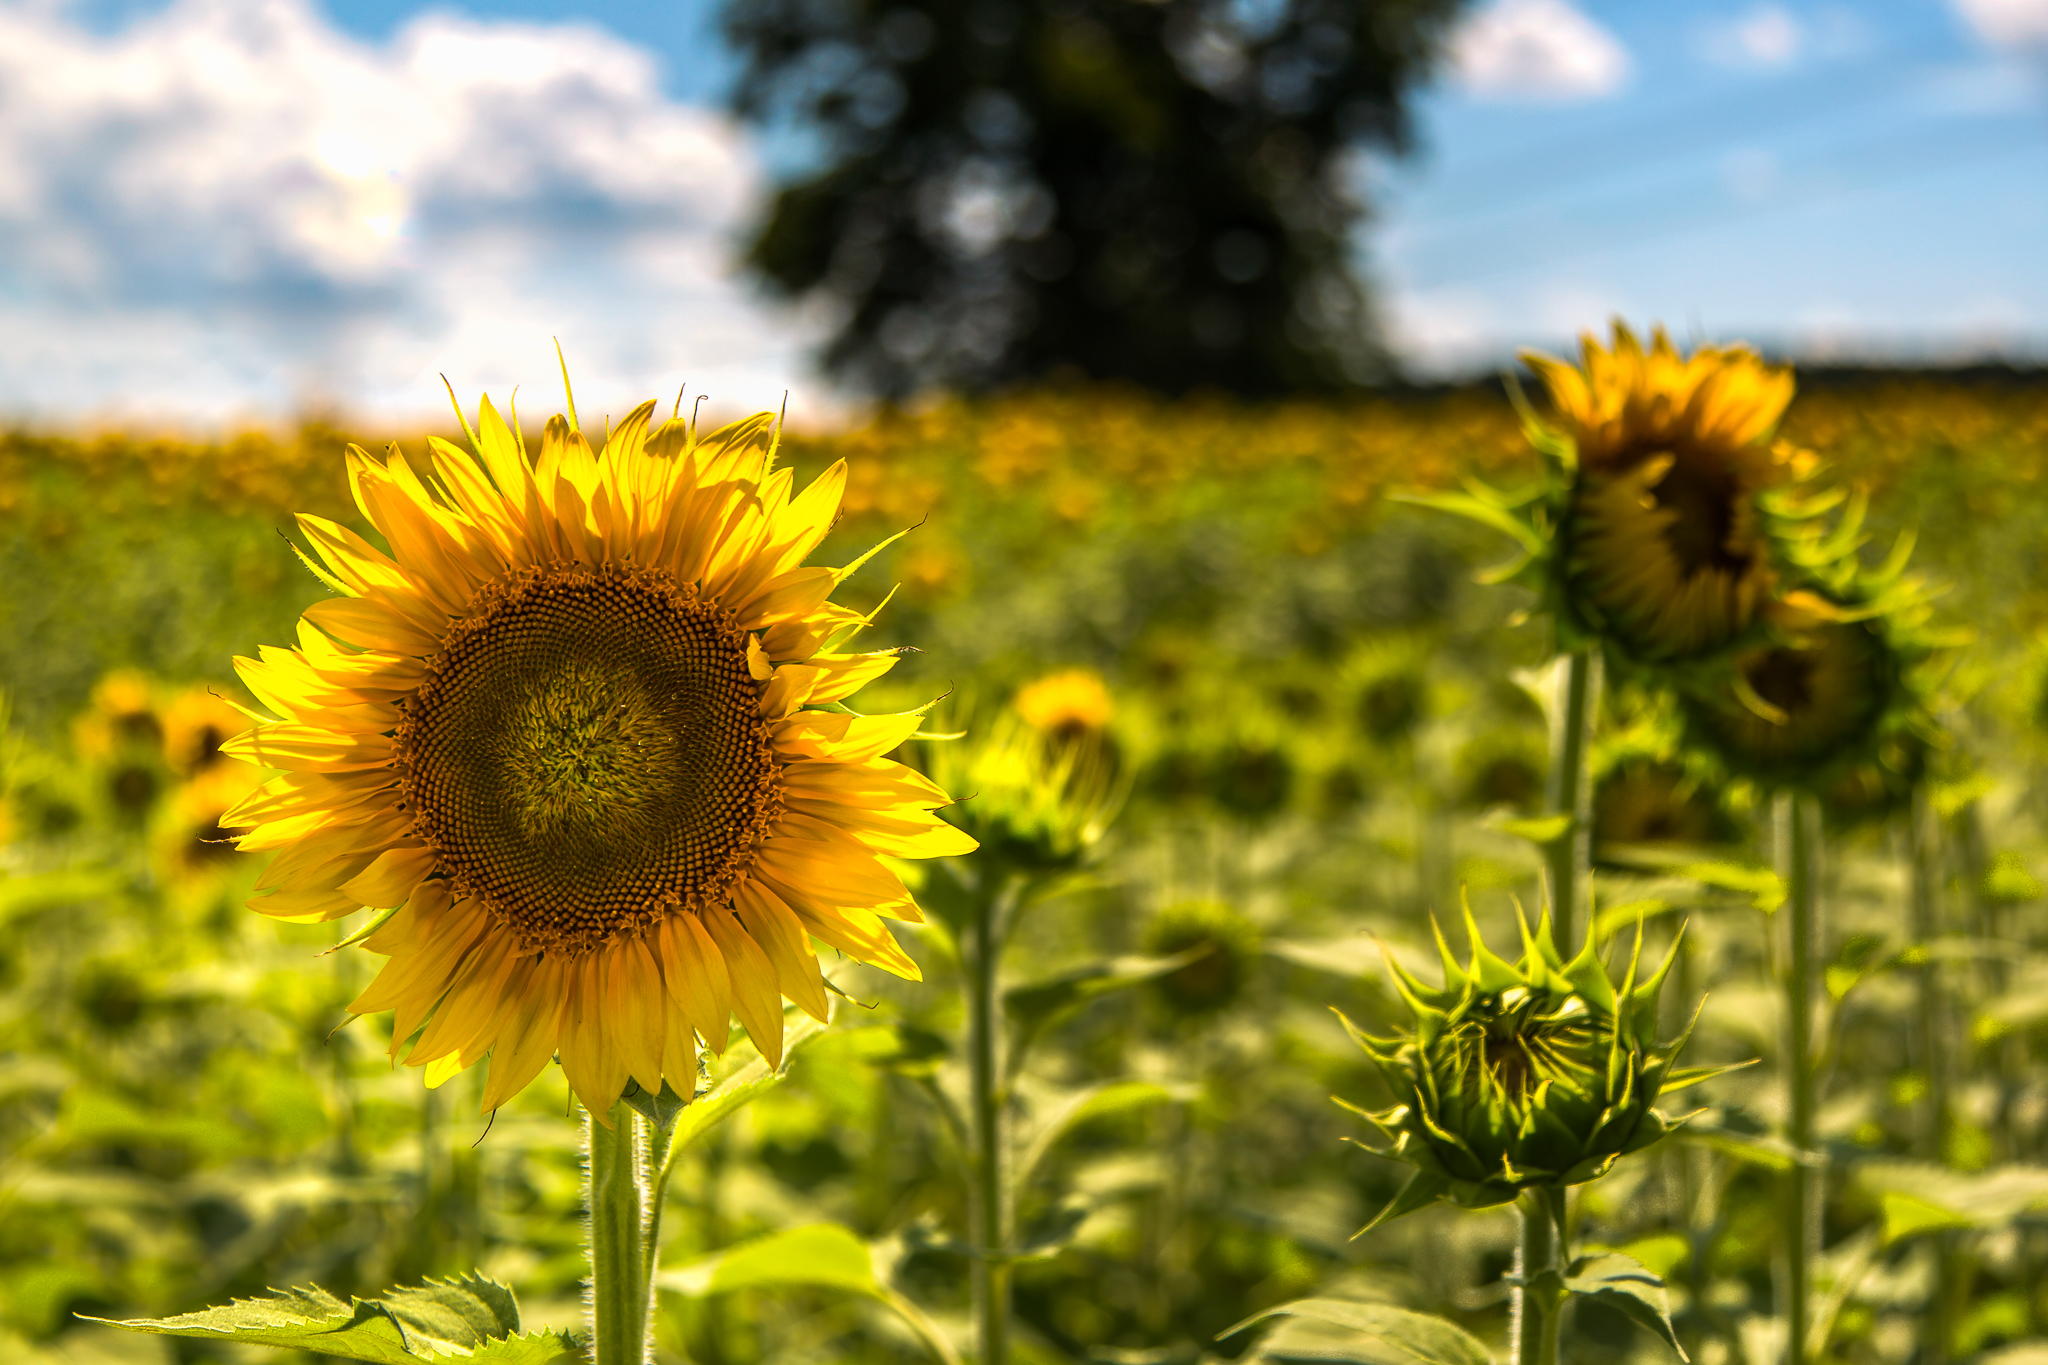 Raleigh Sunflower Fields (Cary: 2014, power lines, fence) - Raleigh ...